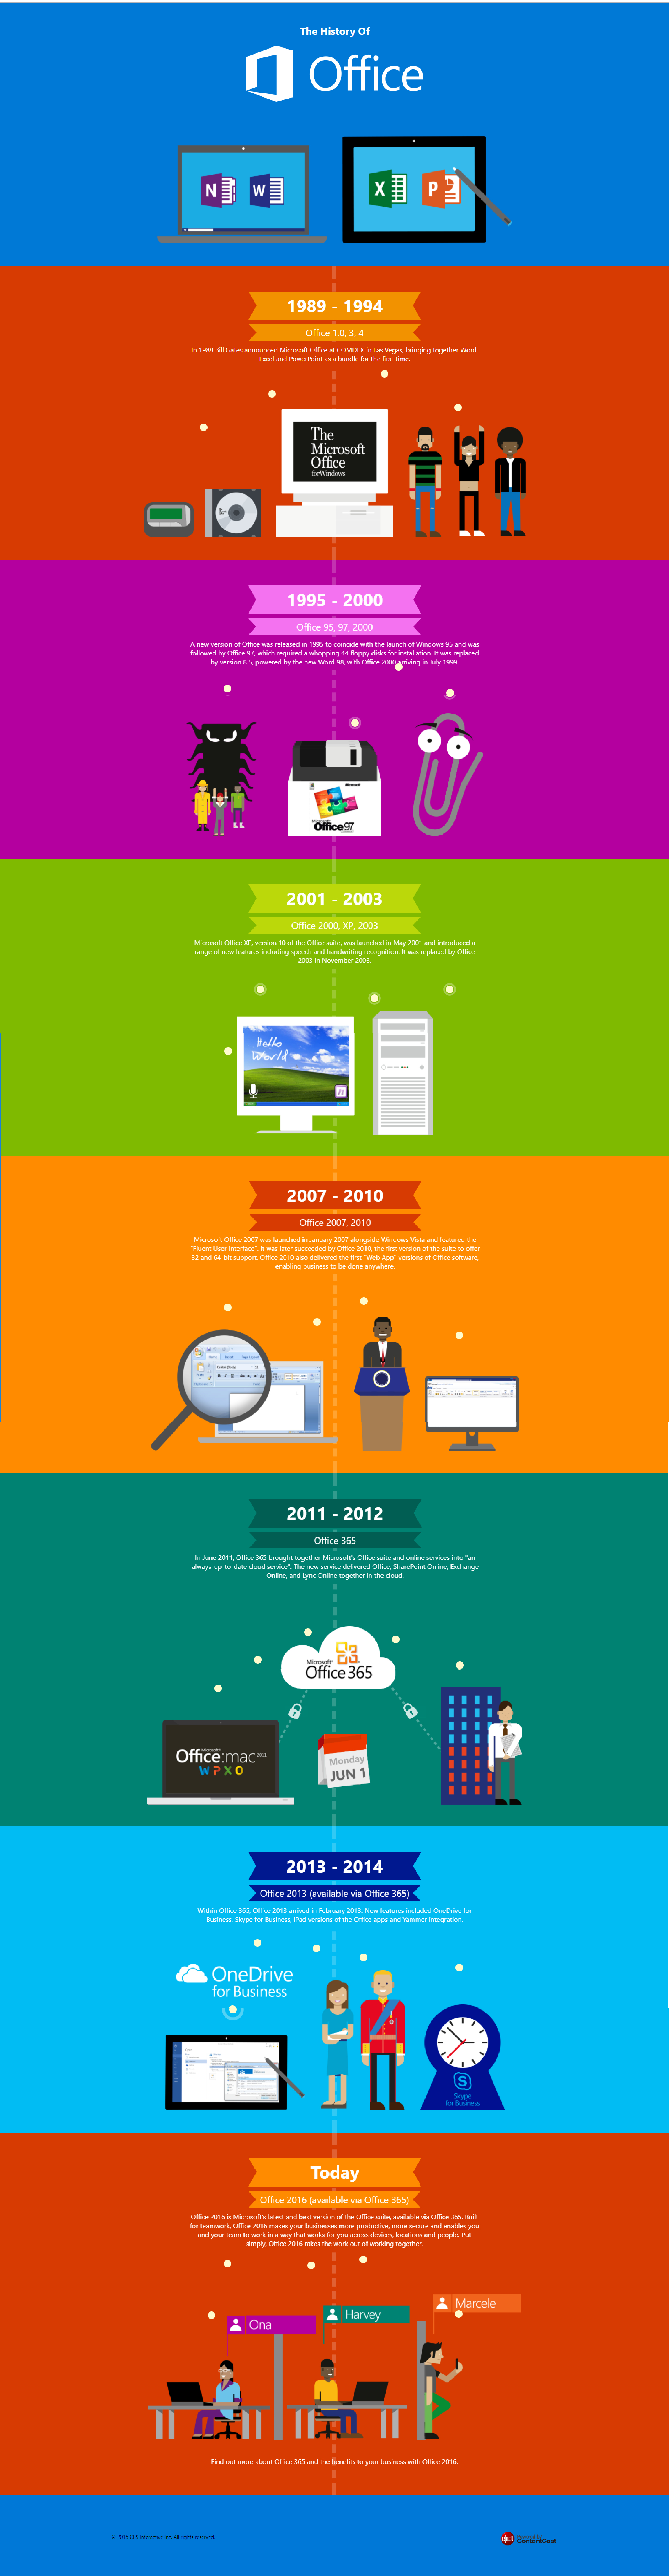 Infographic: The History of Microsoft Office | Encore